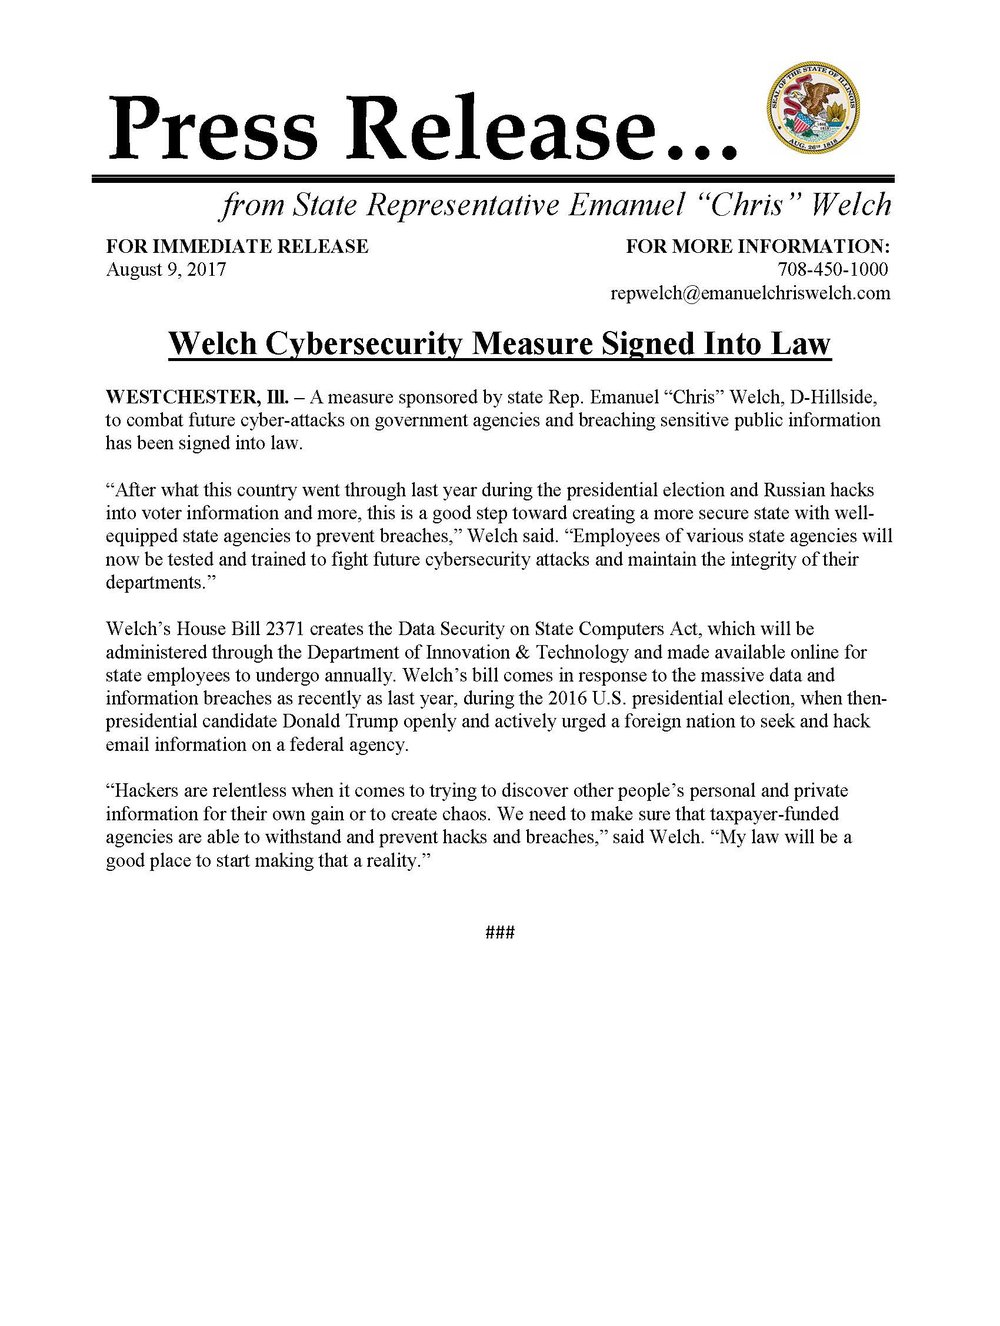 Welch Cybersecurity Measure Signed into Law  (August 9, 2017)